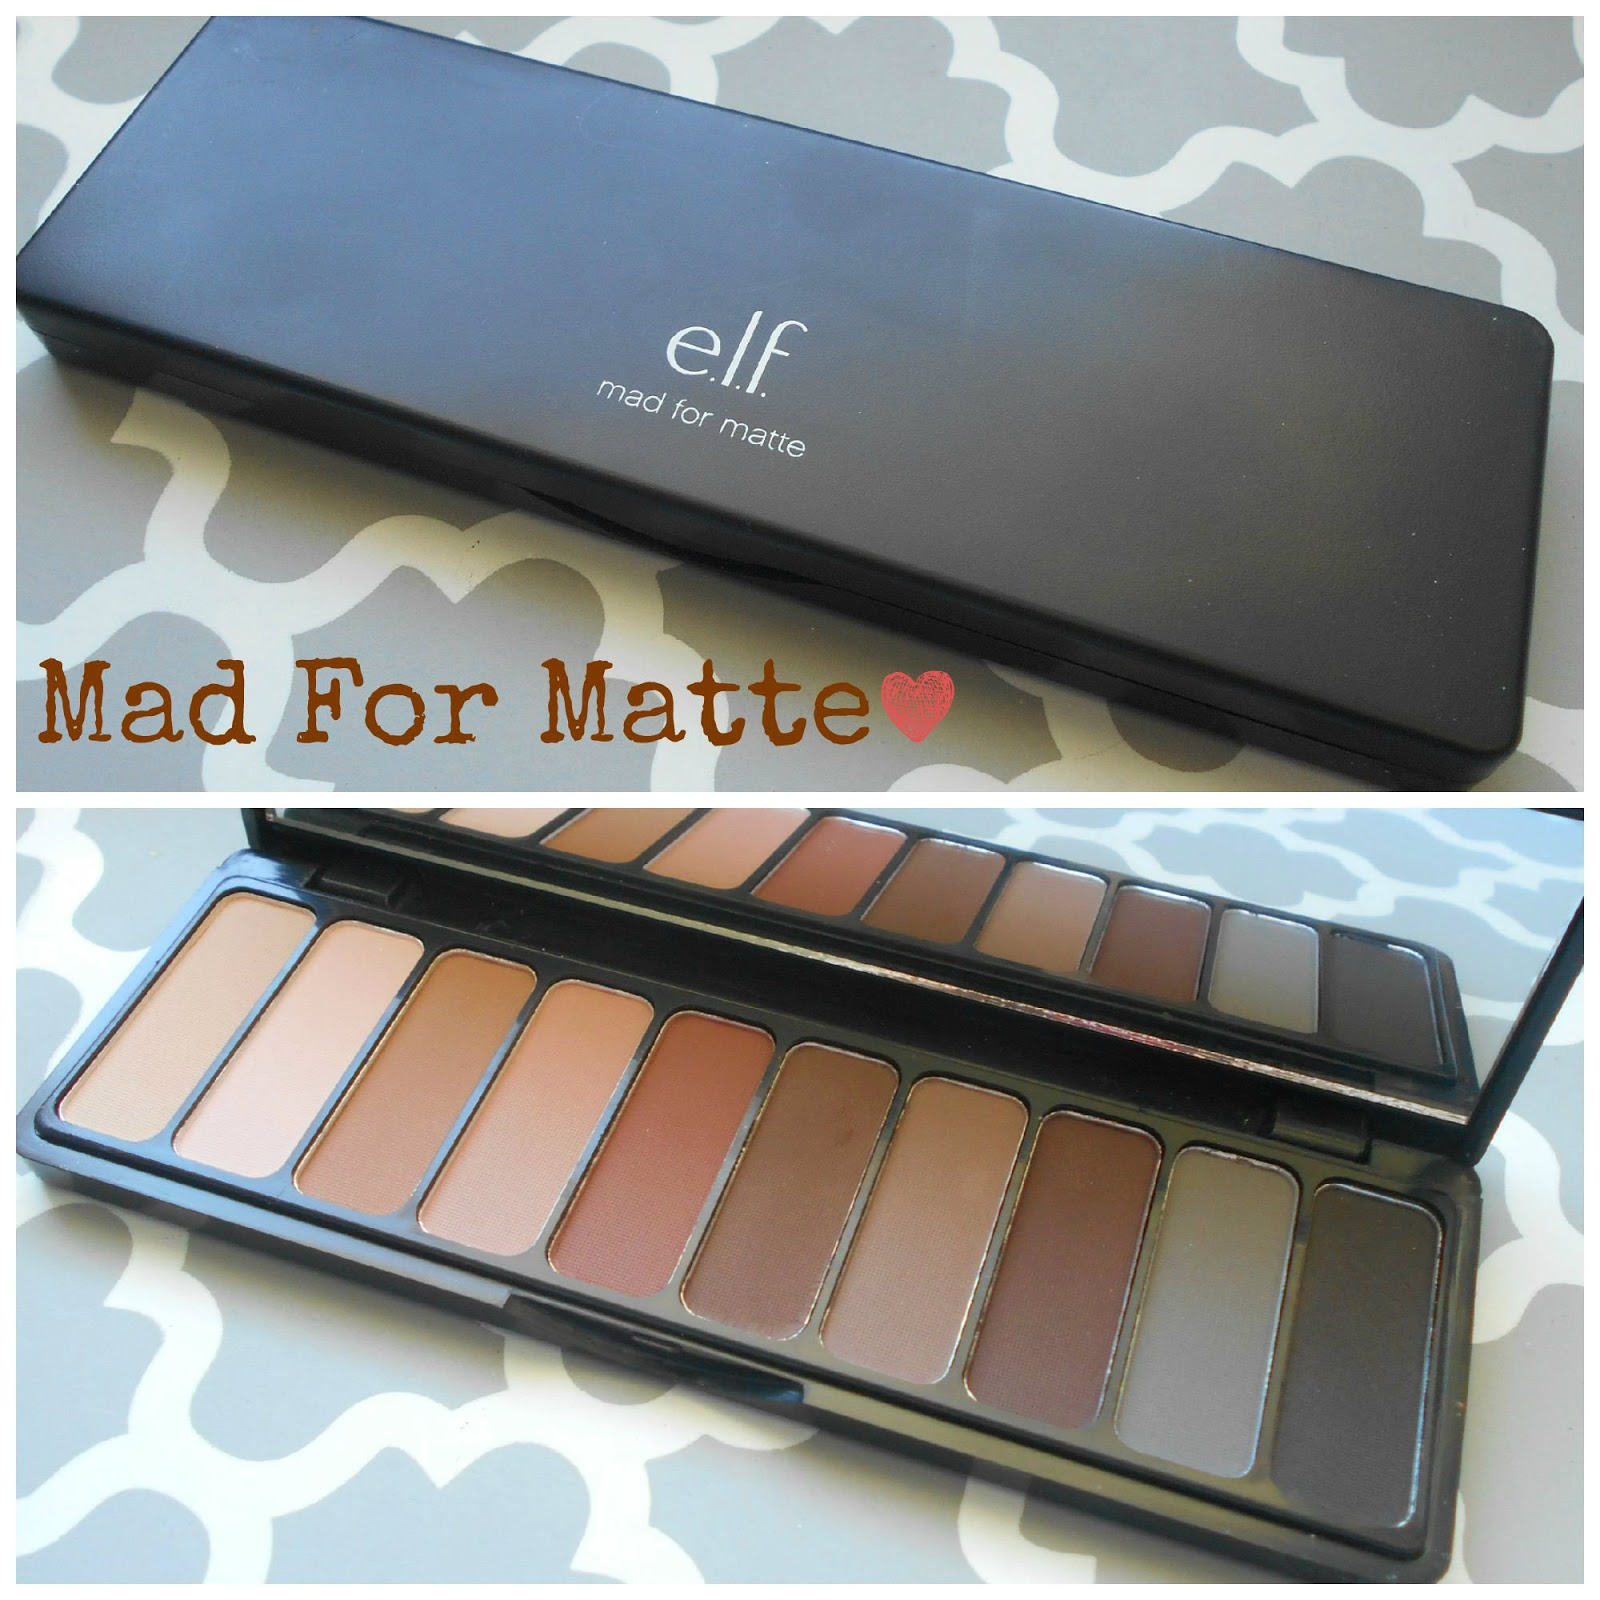 Elf matte eyeshadow palette